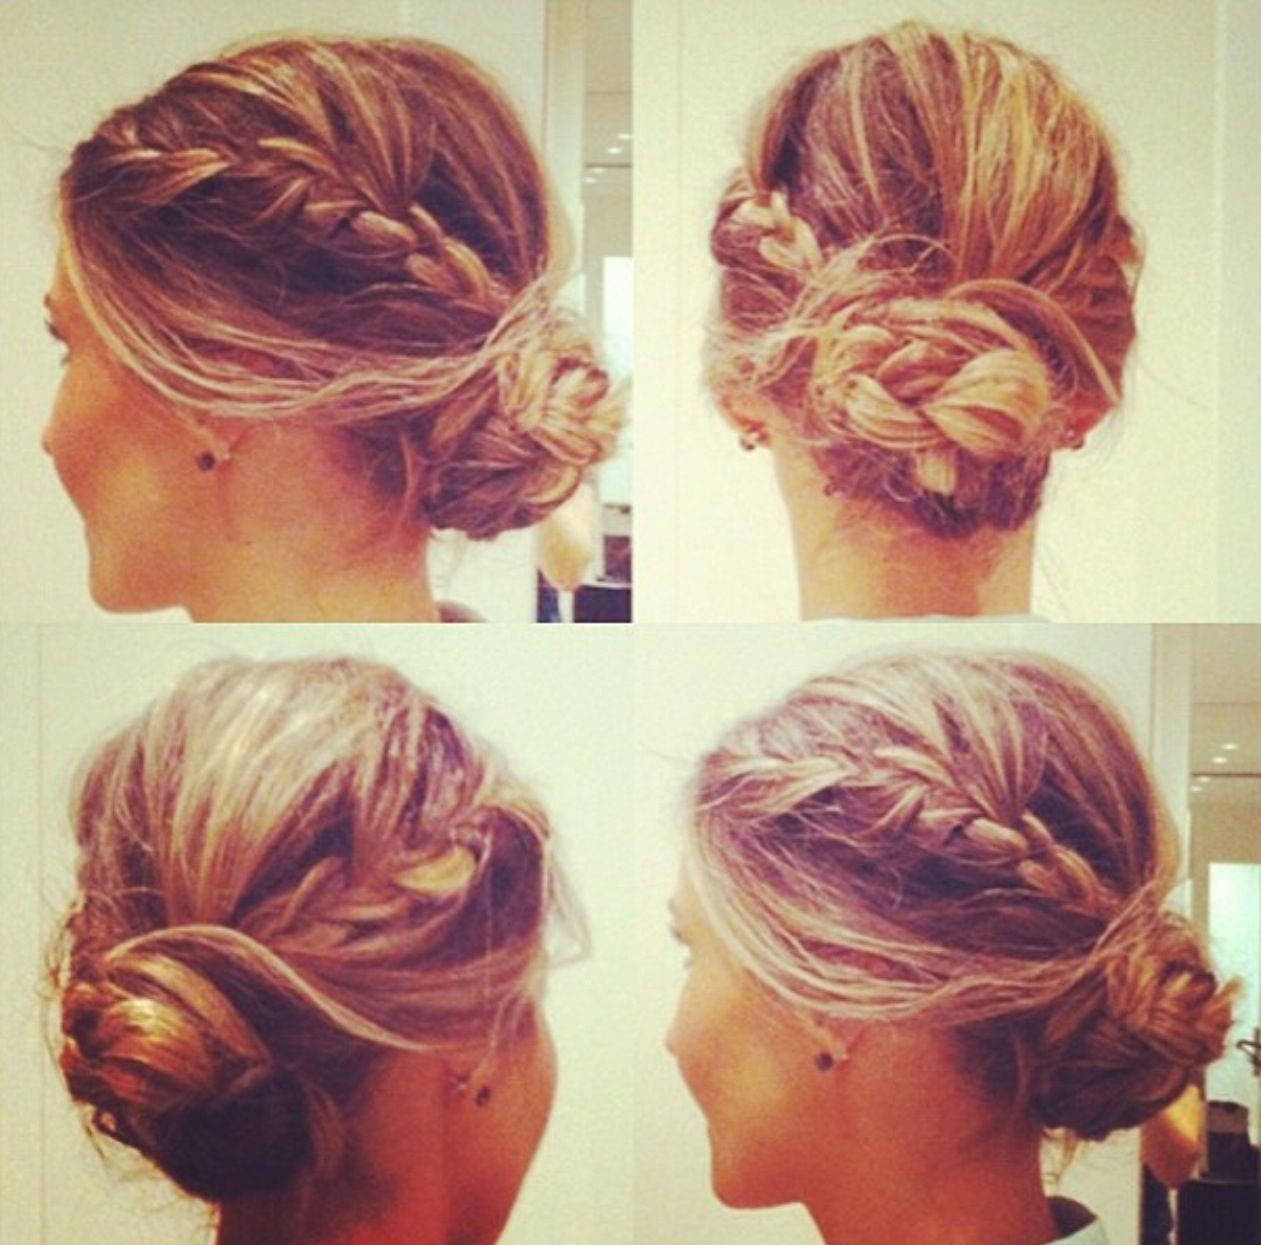 Boho Chic Romantic Hair Updo